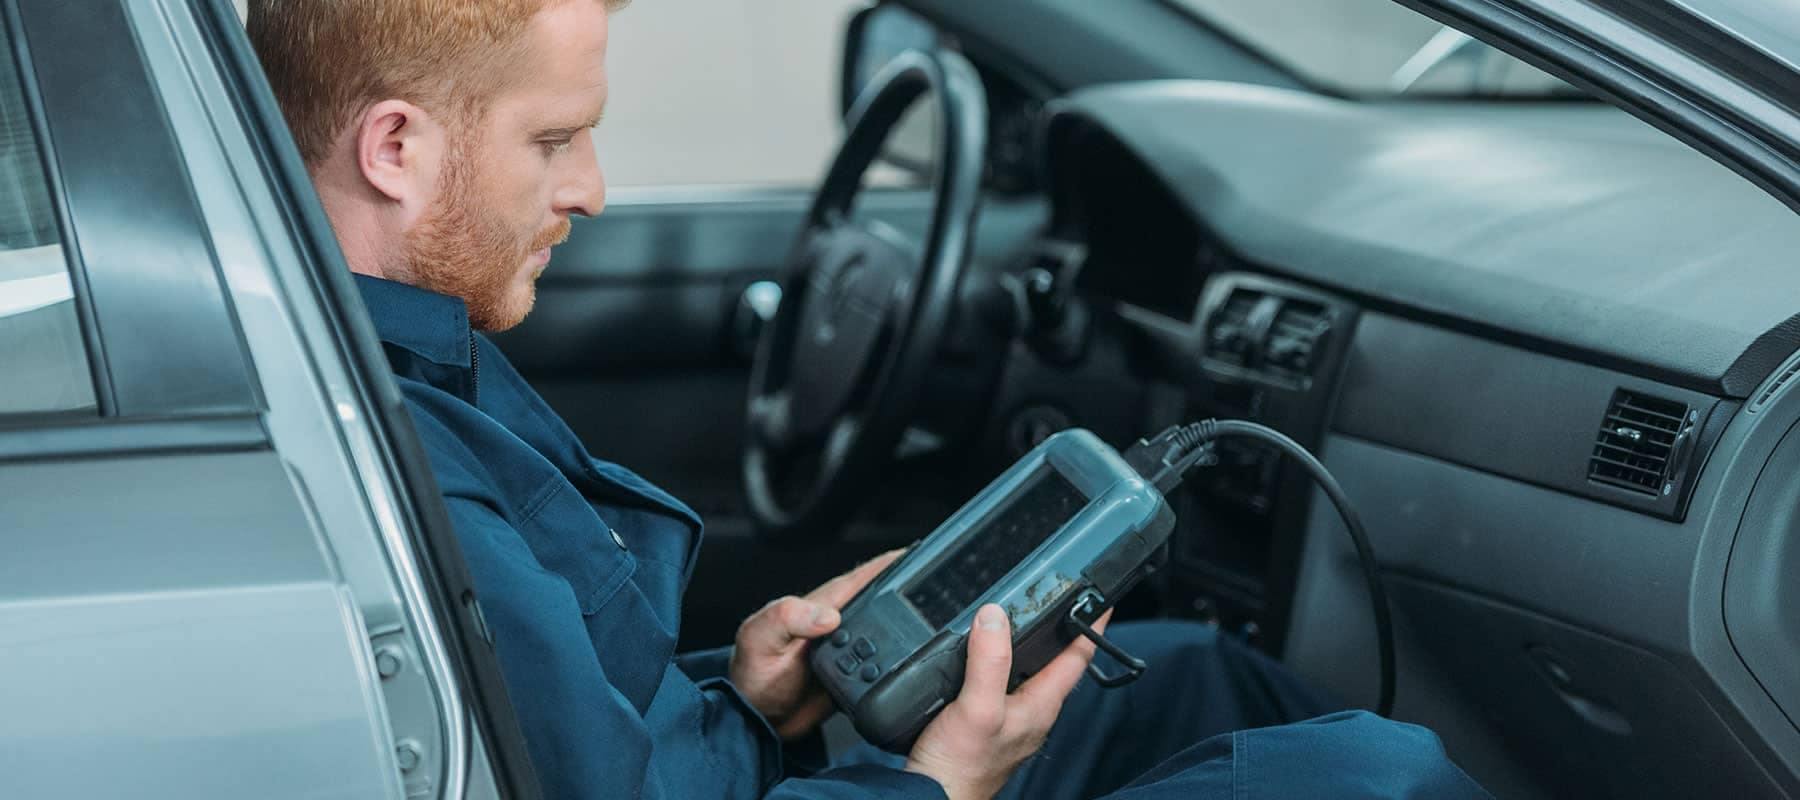 Diagnostic picture of technician looking up car readings